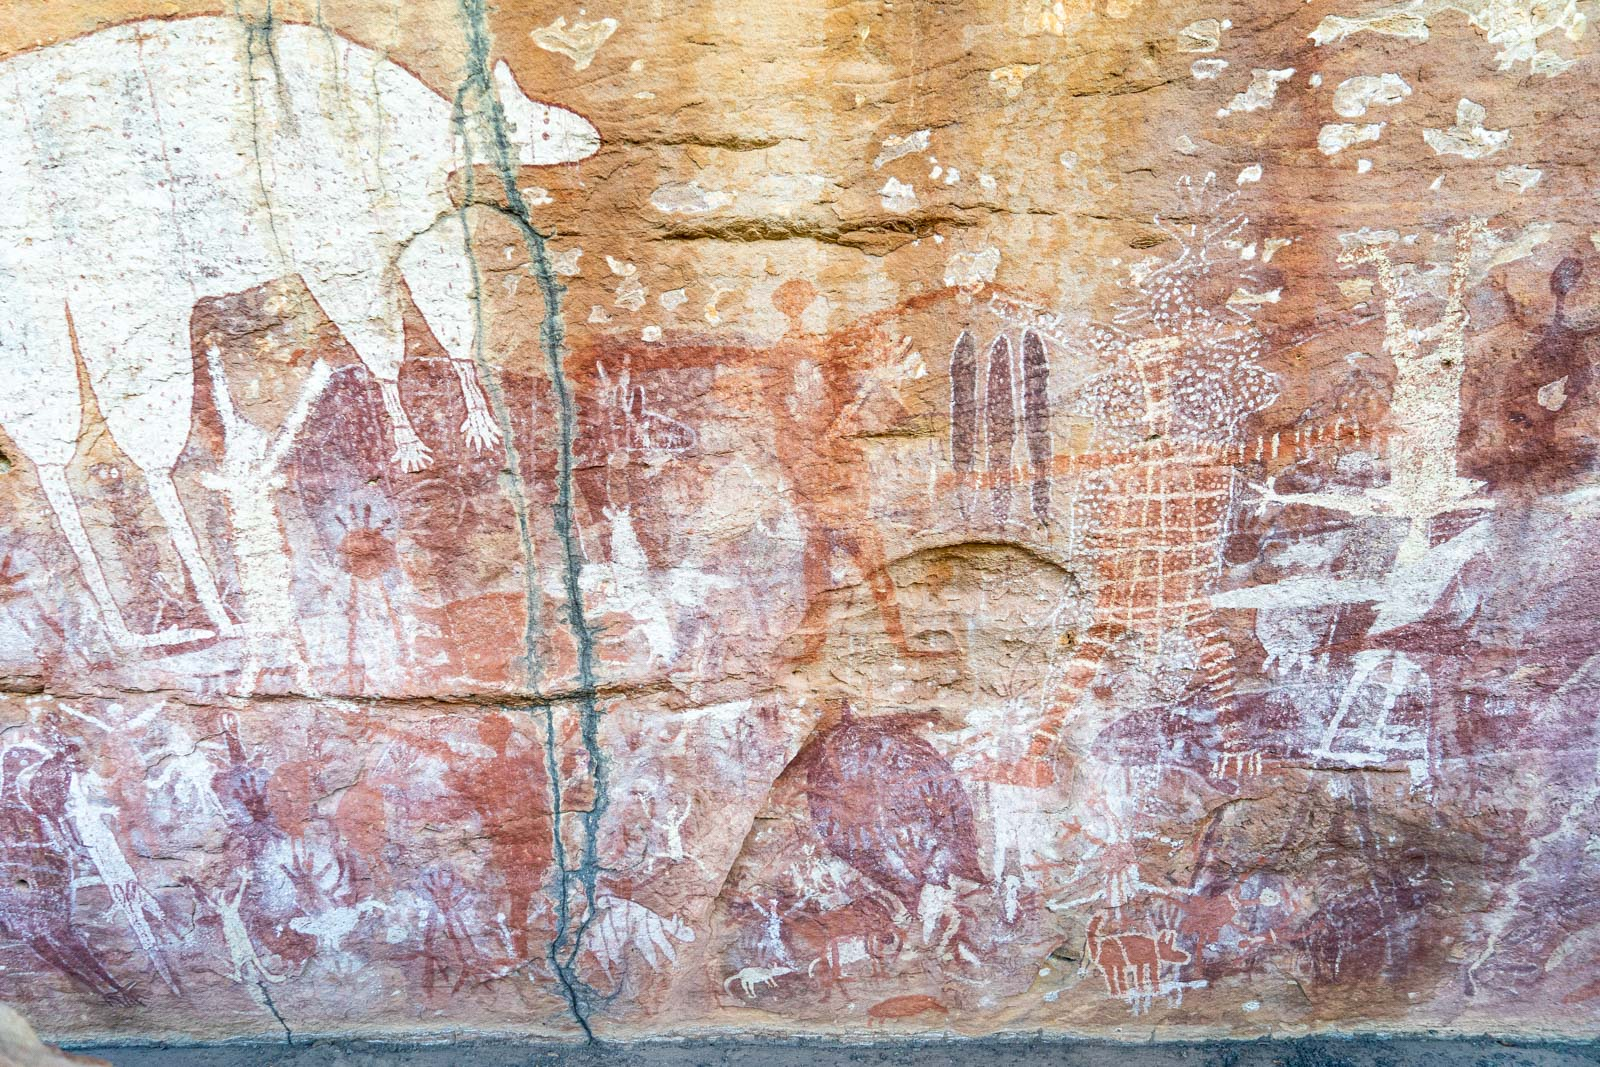 Quinkan Rock Art, Laura, Queensland